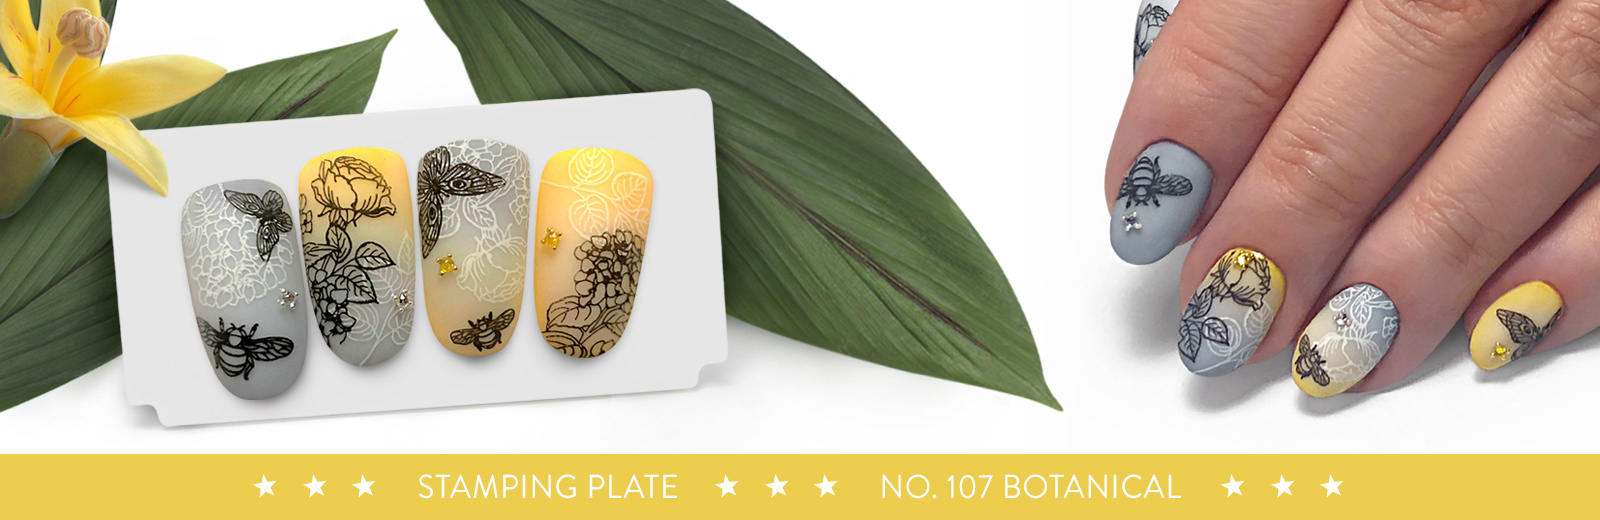 New stamping plate has arrived! No. 107 Botanical